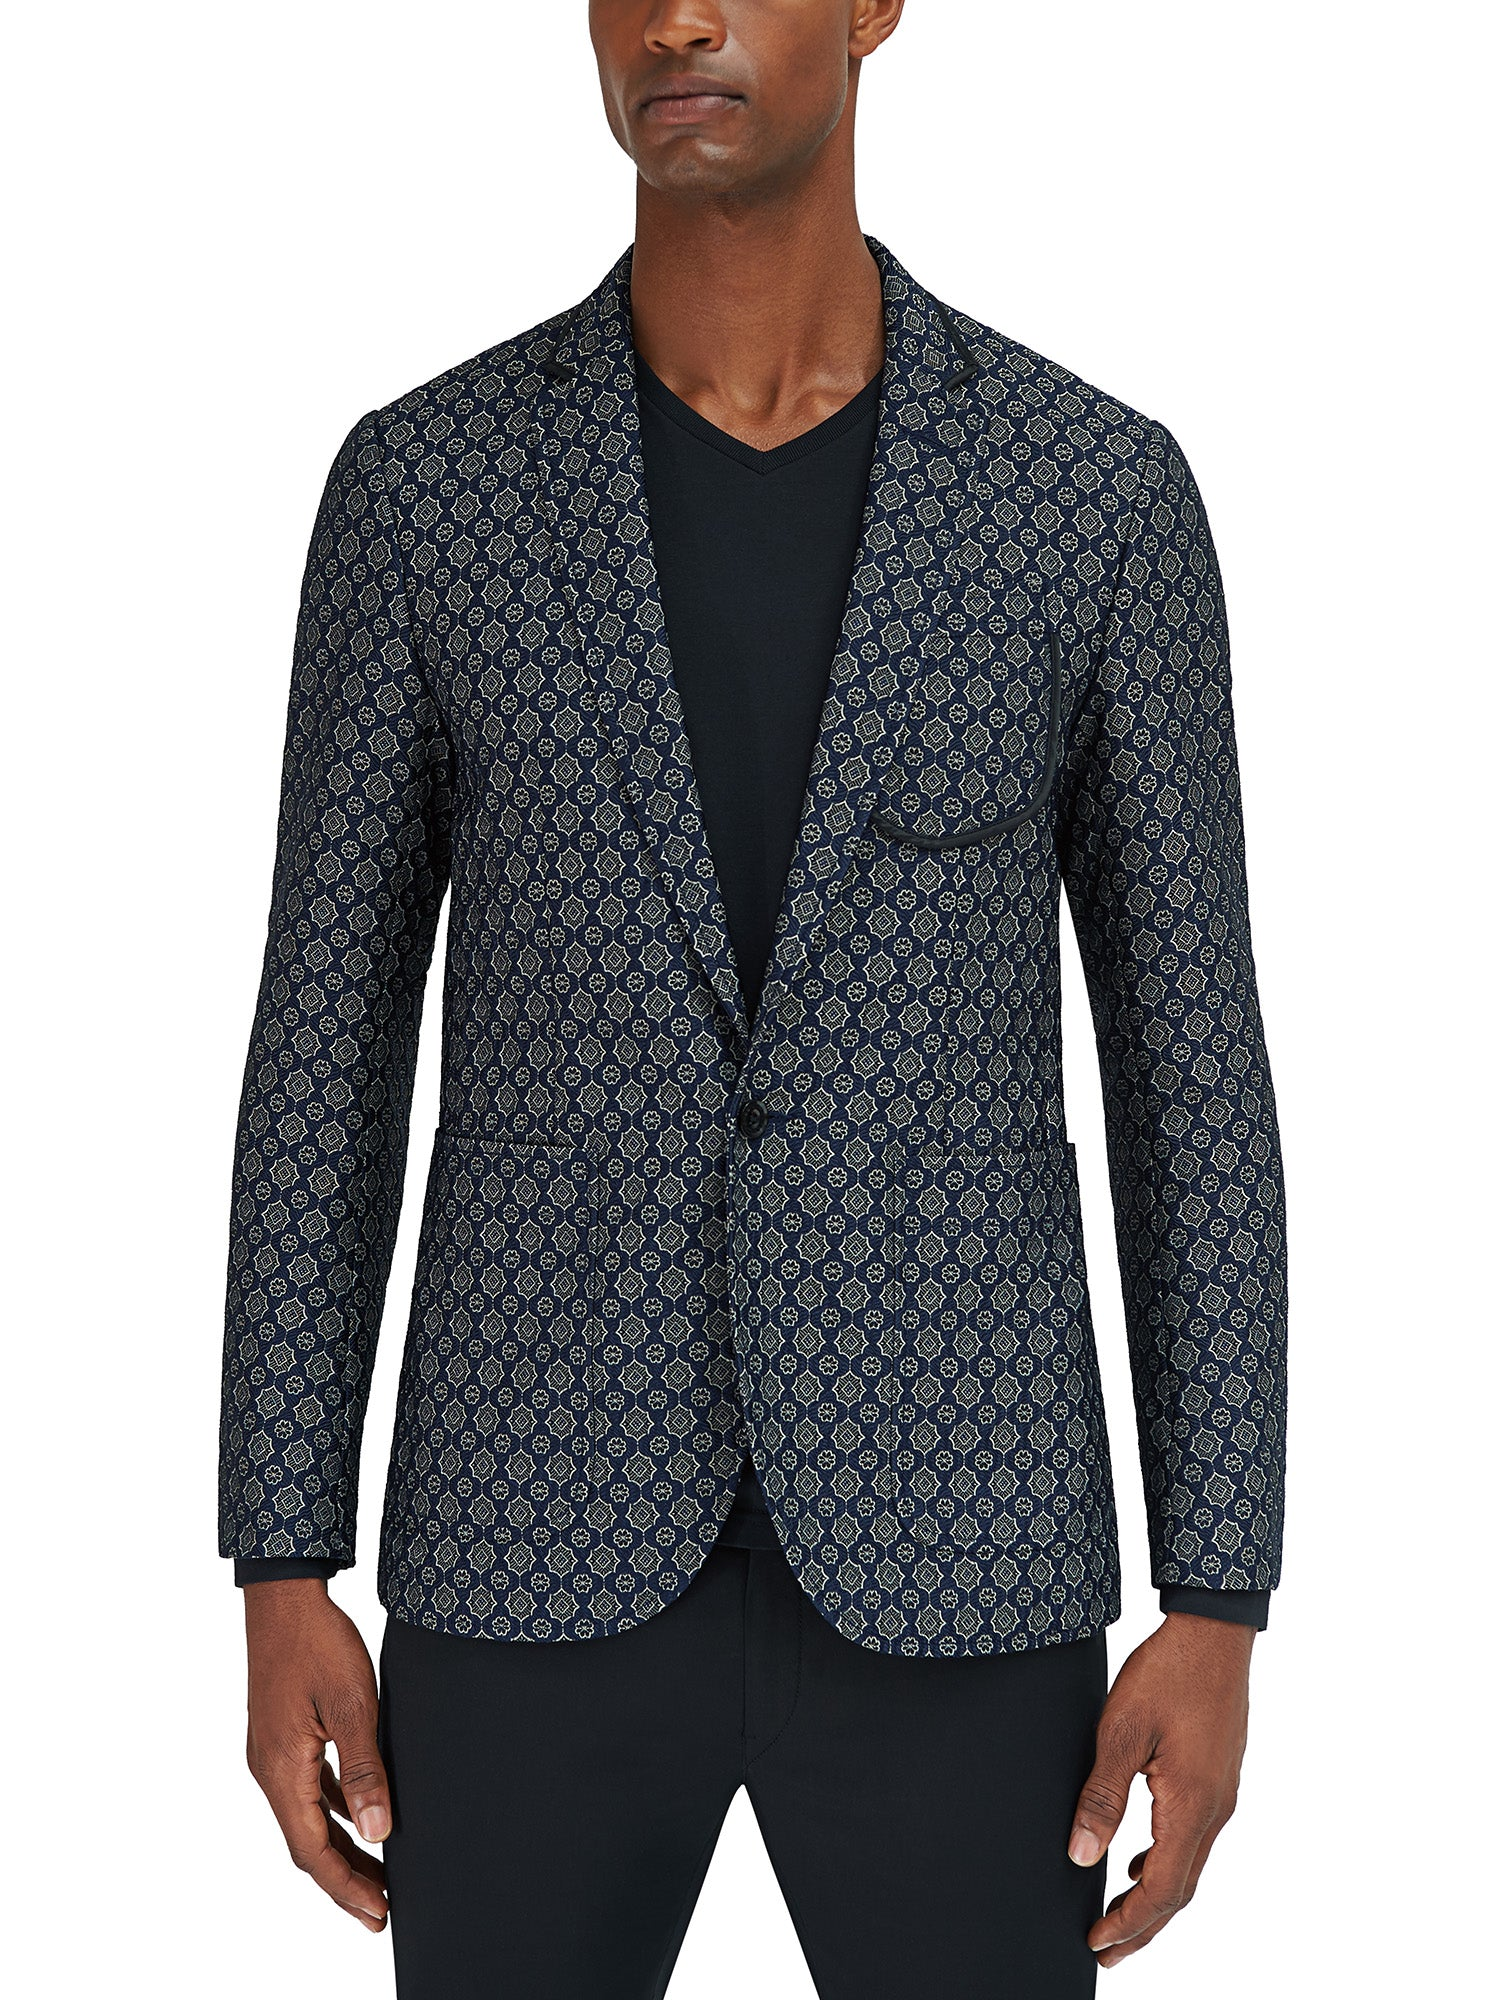 Parting Jacket - Navy Floral